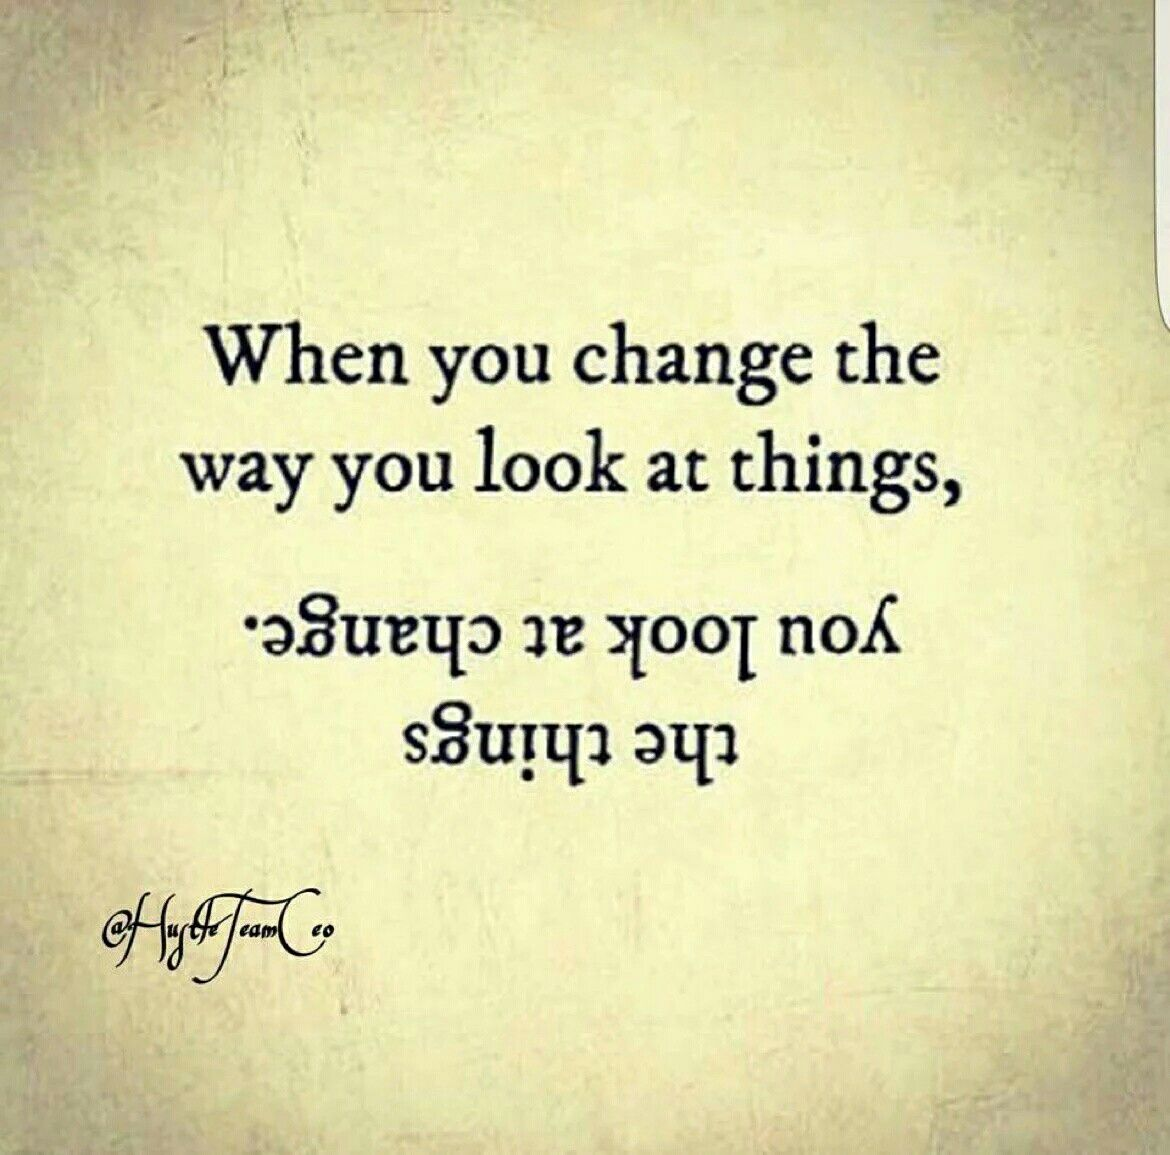 Change the way you look things